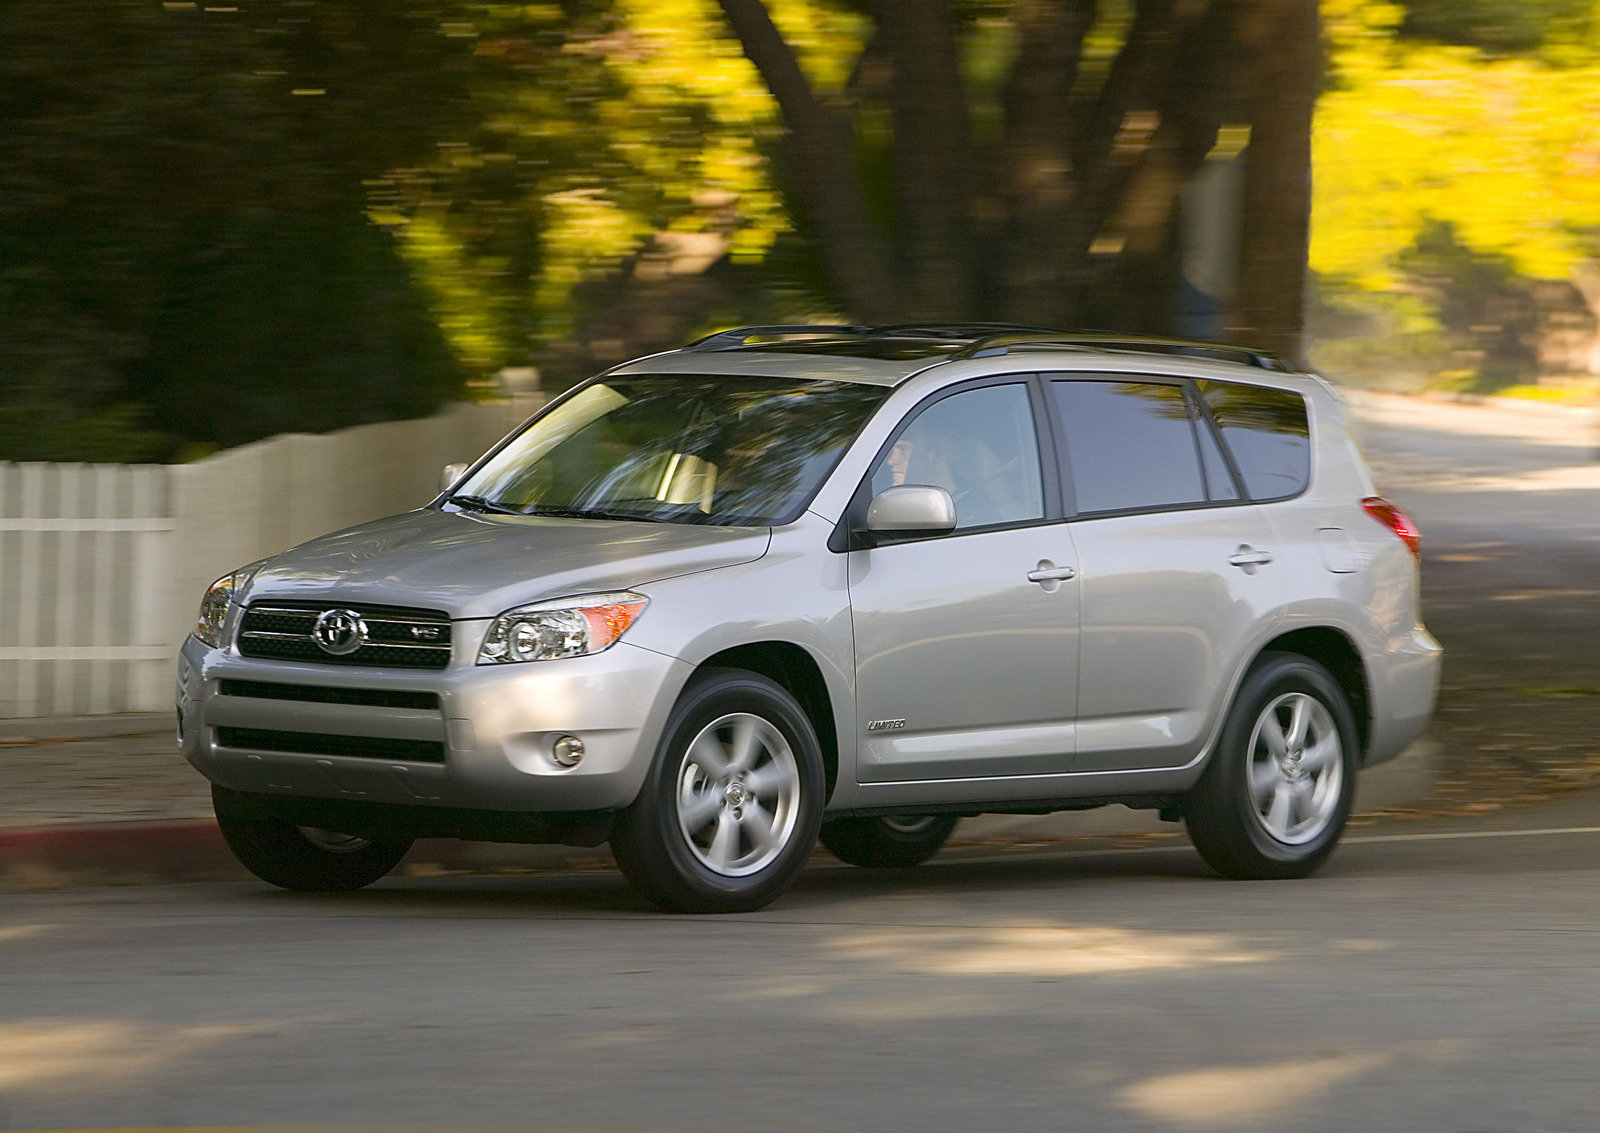 2006 toyota rav4 picture 93583 car review top speed. Black Bedroom Furniture Sets. Home Design Ideas